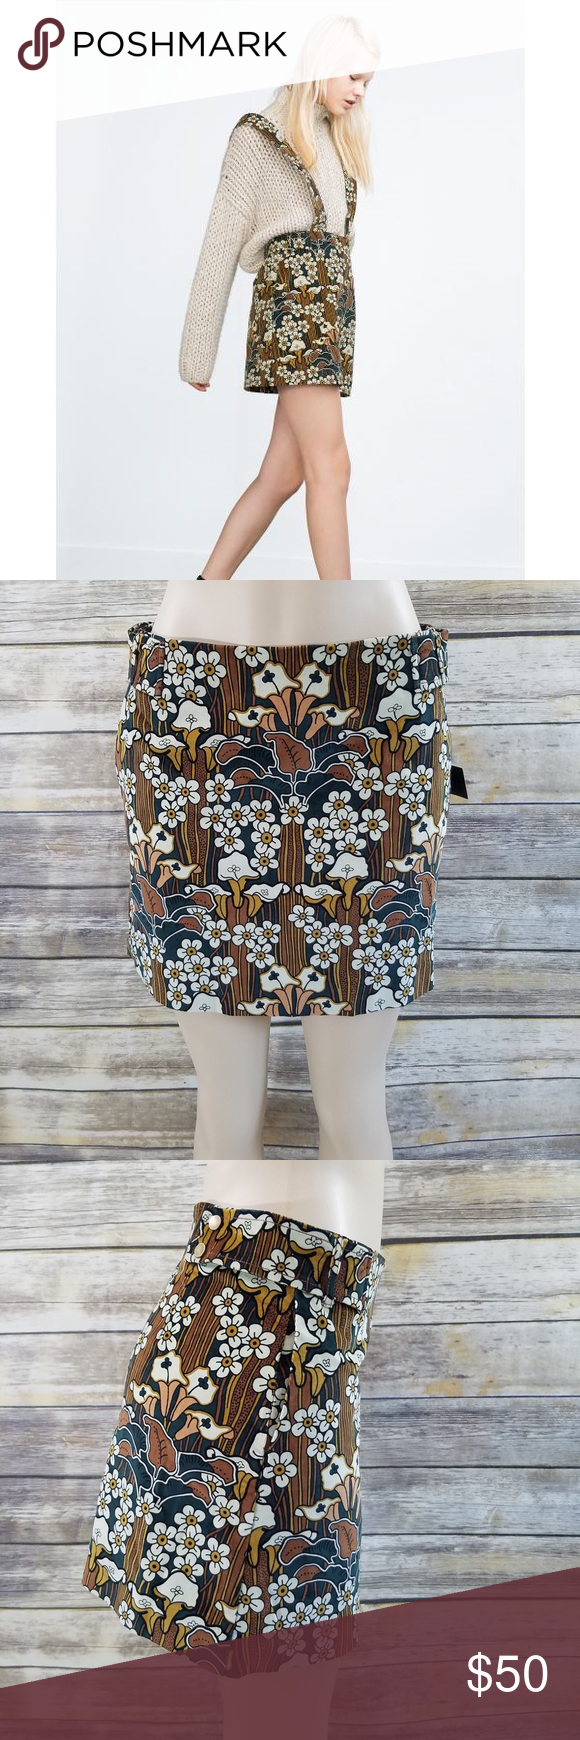 cb7954dac4 Zara Velvet Ribbed Vintage Floral Print Mini Skirt Corduroy Velvet Ribbed  Floral Print skirt. Mini Skirt. Wide braces. Patterned fabric from 60's or  70's ...